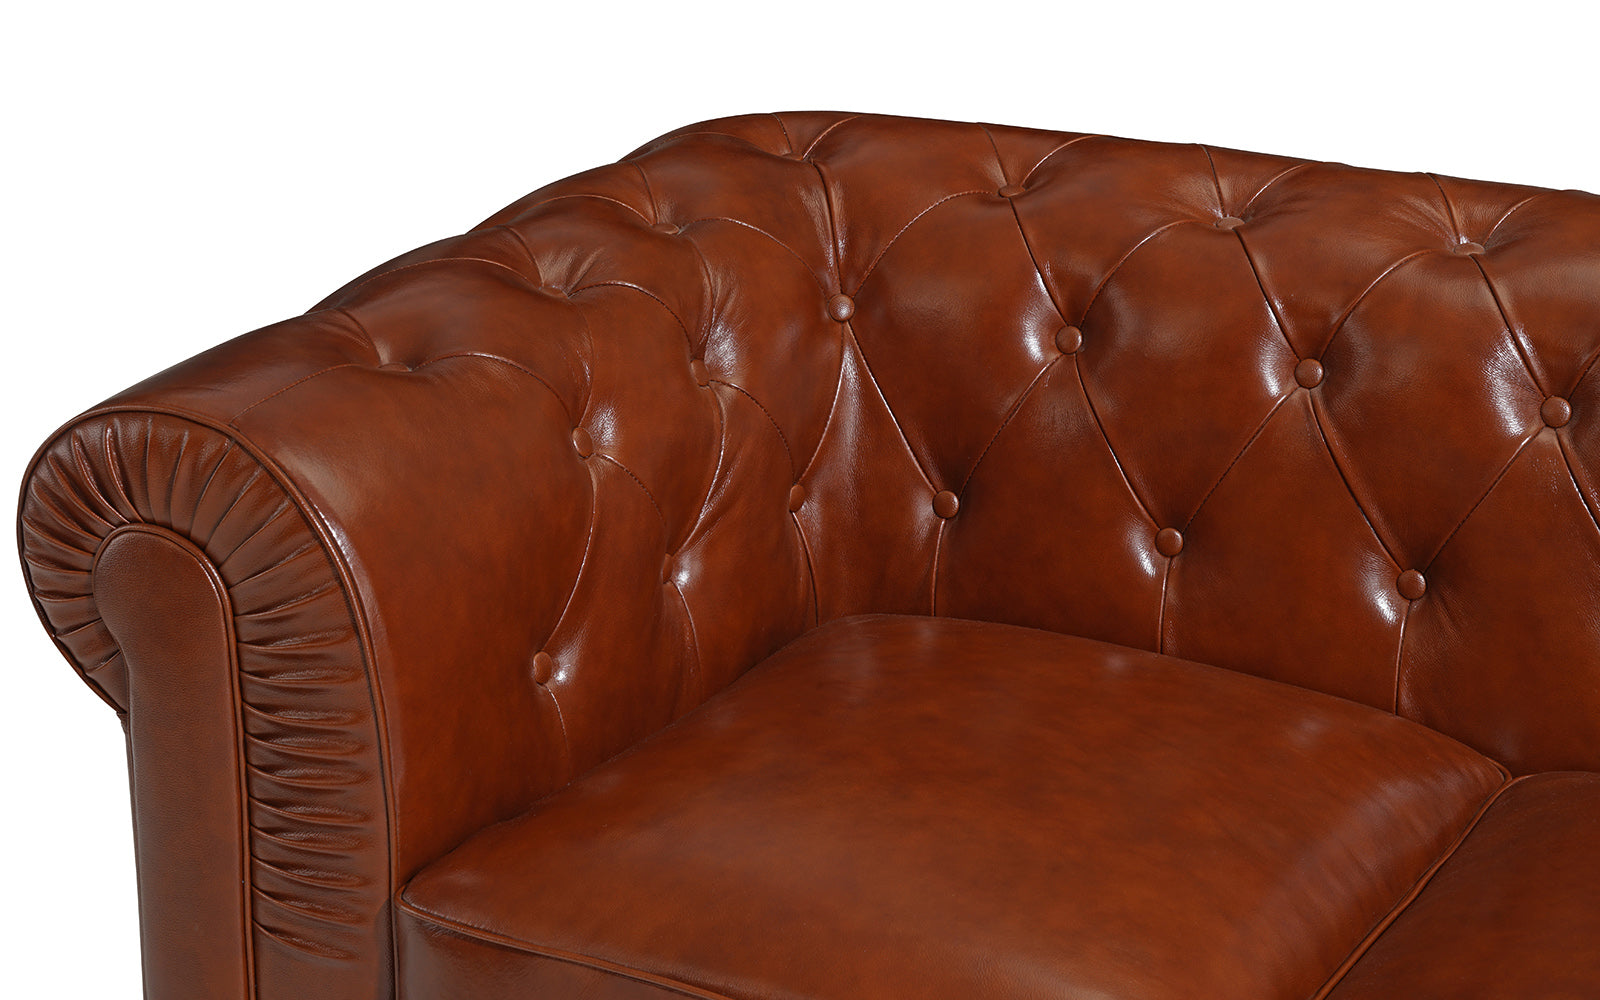 Jude Real Tufted Leather Chesterfield Sofa Sofamania Com ~ Chesterfield Brown Sofa